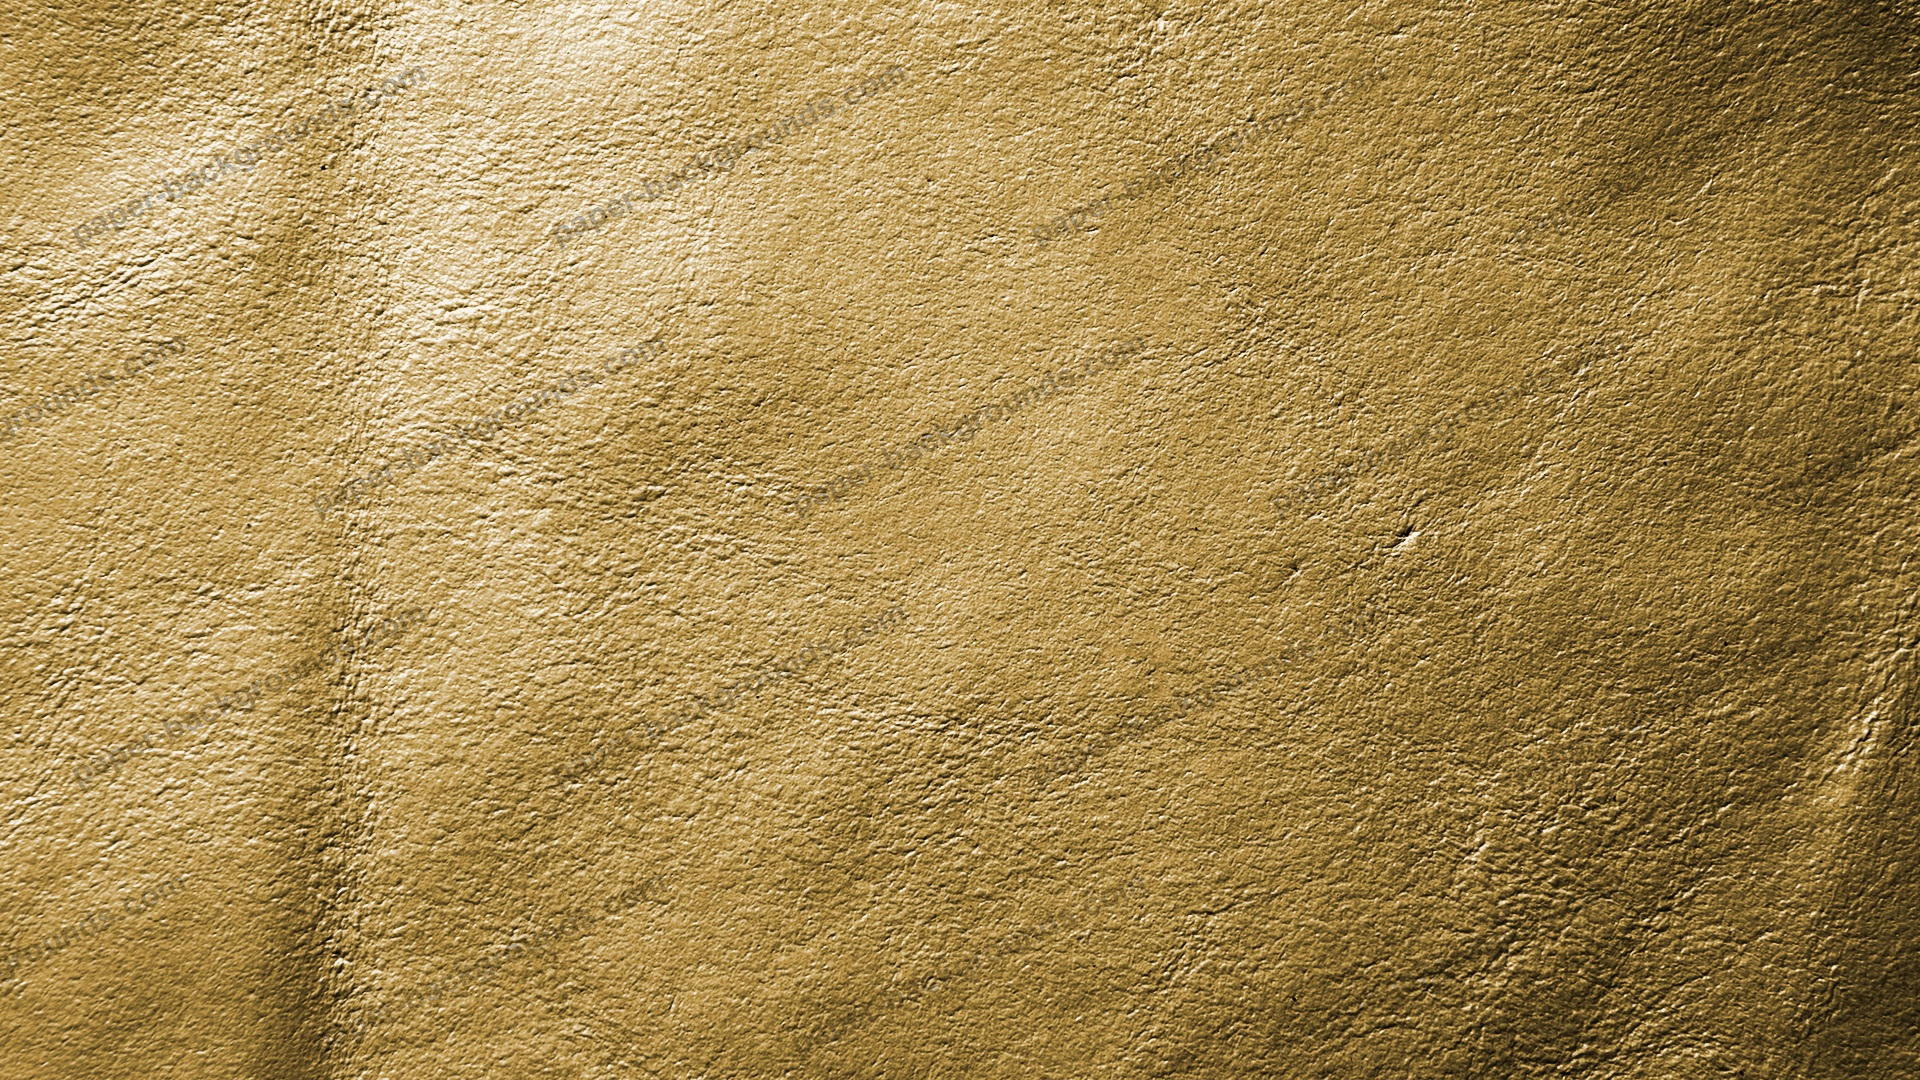 Yellow Shiny Leather Texture HD 1920 x 1080p